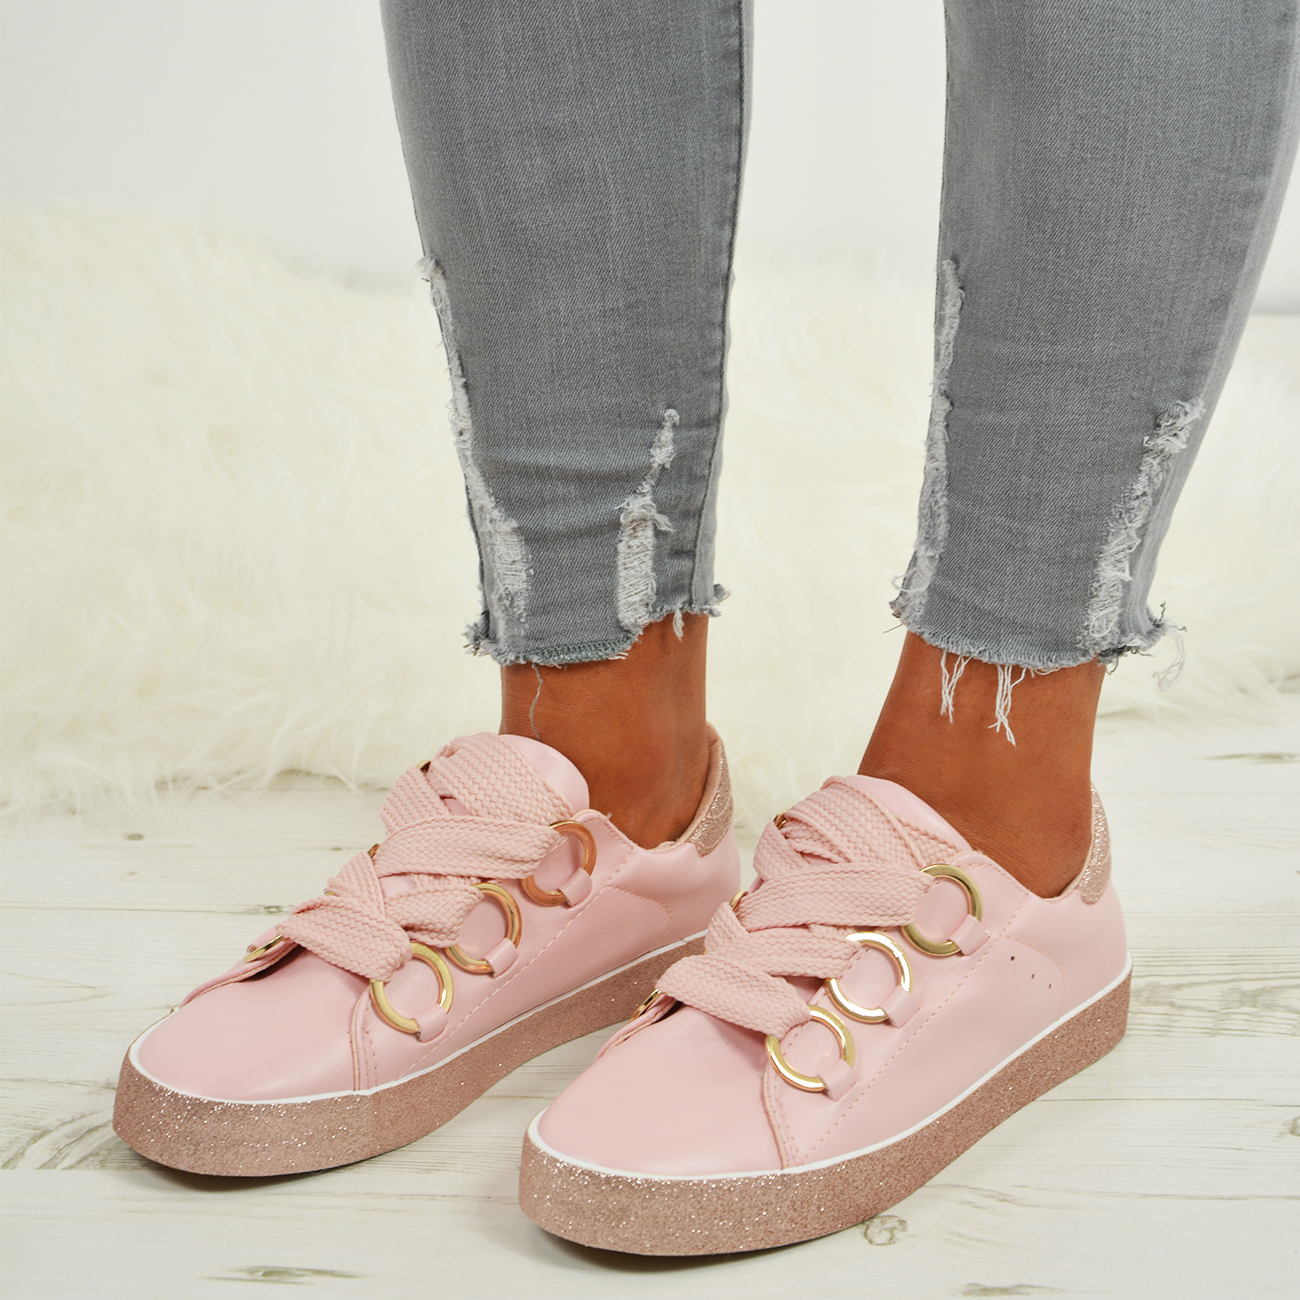 LADIES-WOMENS-GLITTER-SNEAKERS-SPARKLE-TRAINERS-LACE-UP-PLIMSOLL-PUMPS-SHOES thumbnail 14